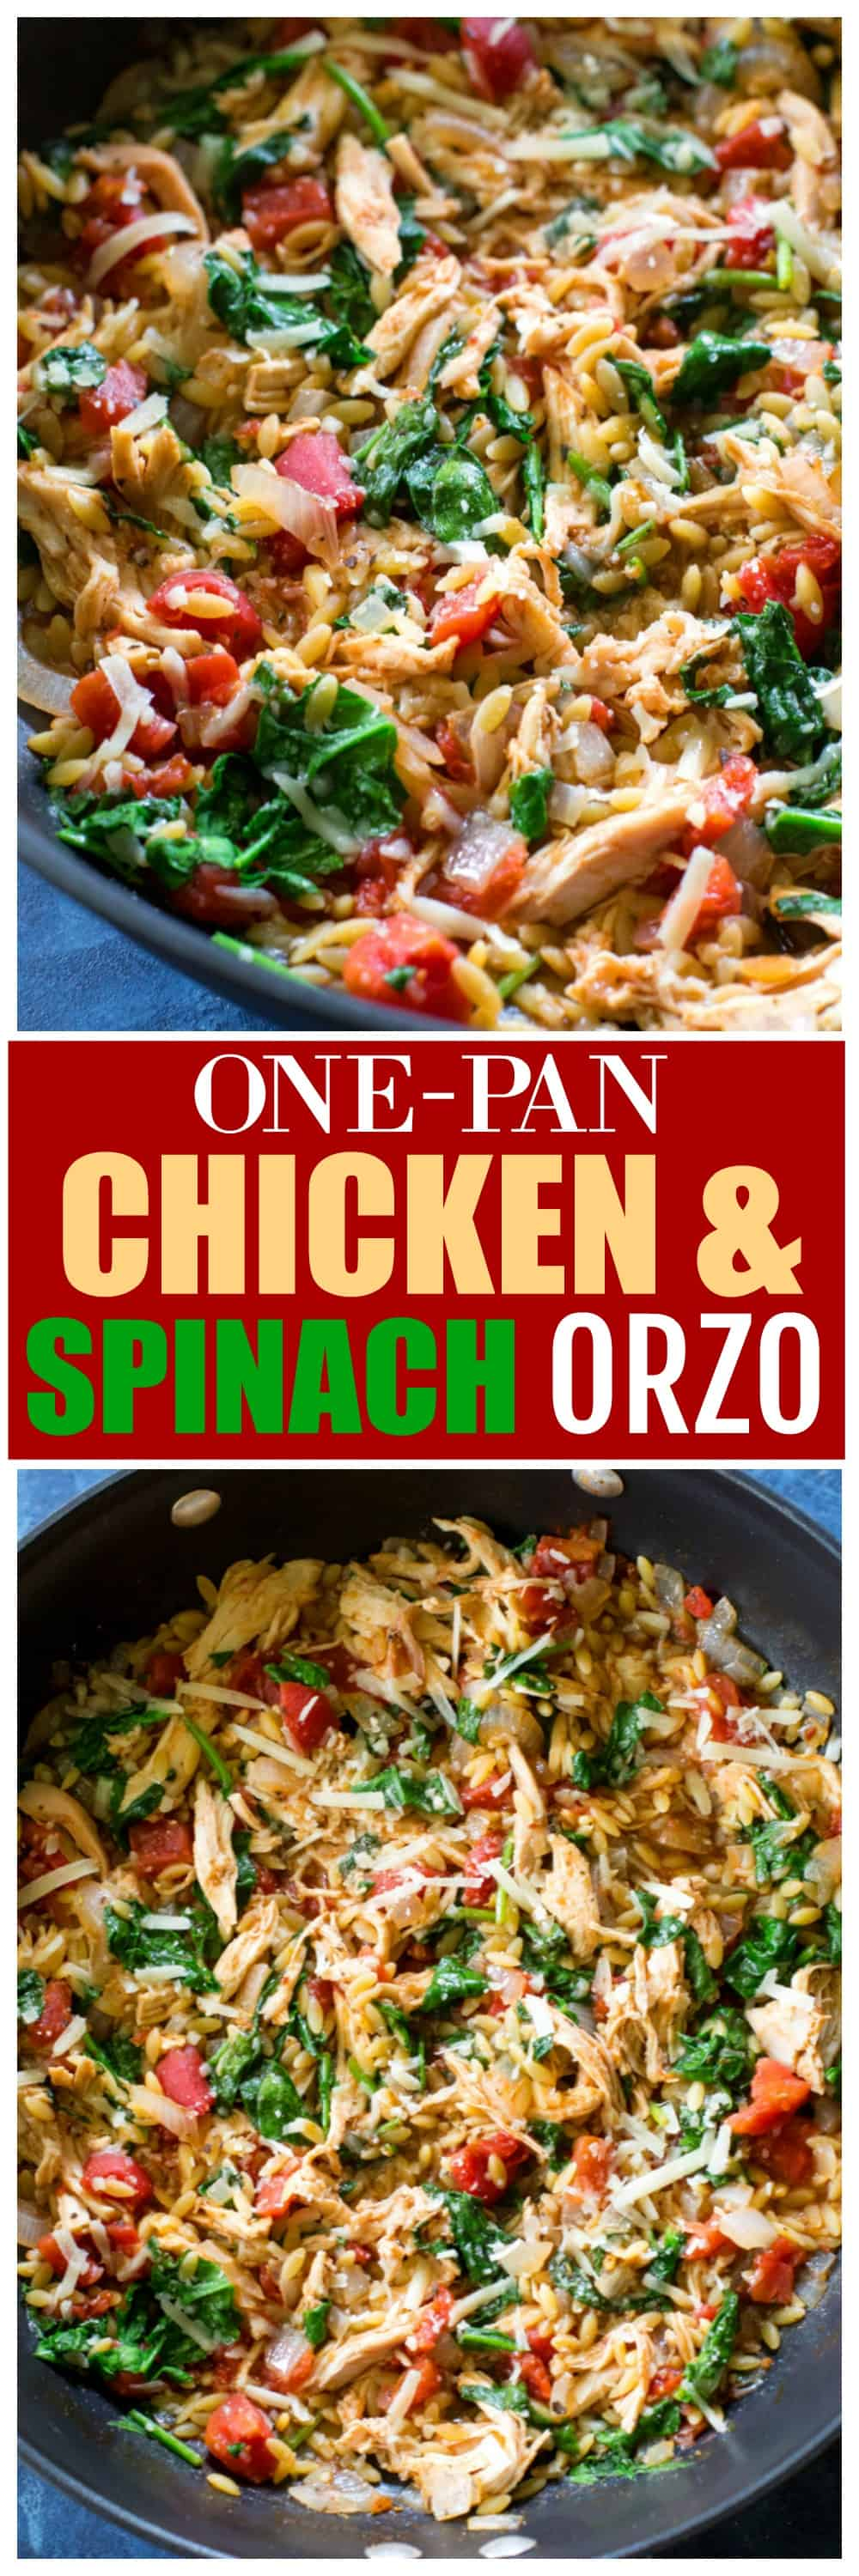 One-Pan Chicken Spinach Orzo